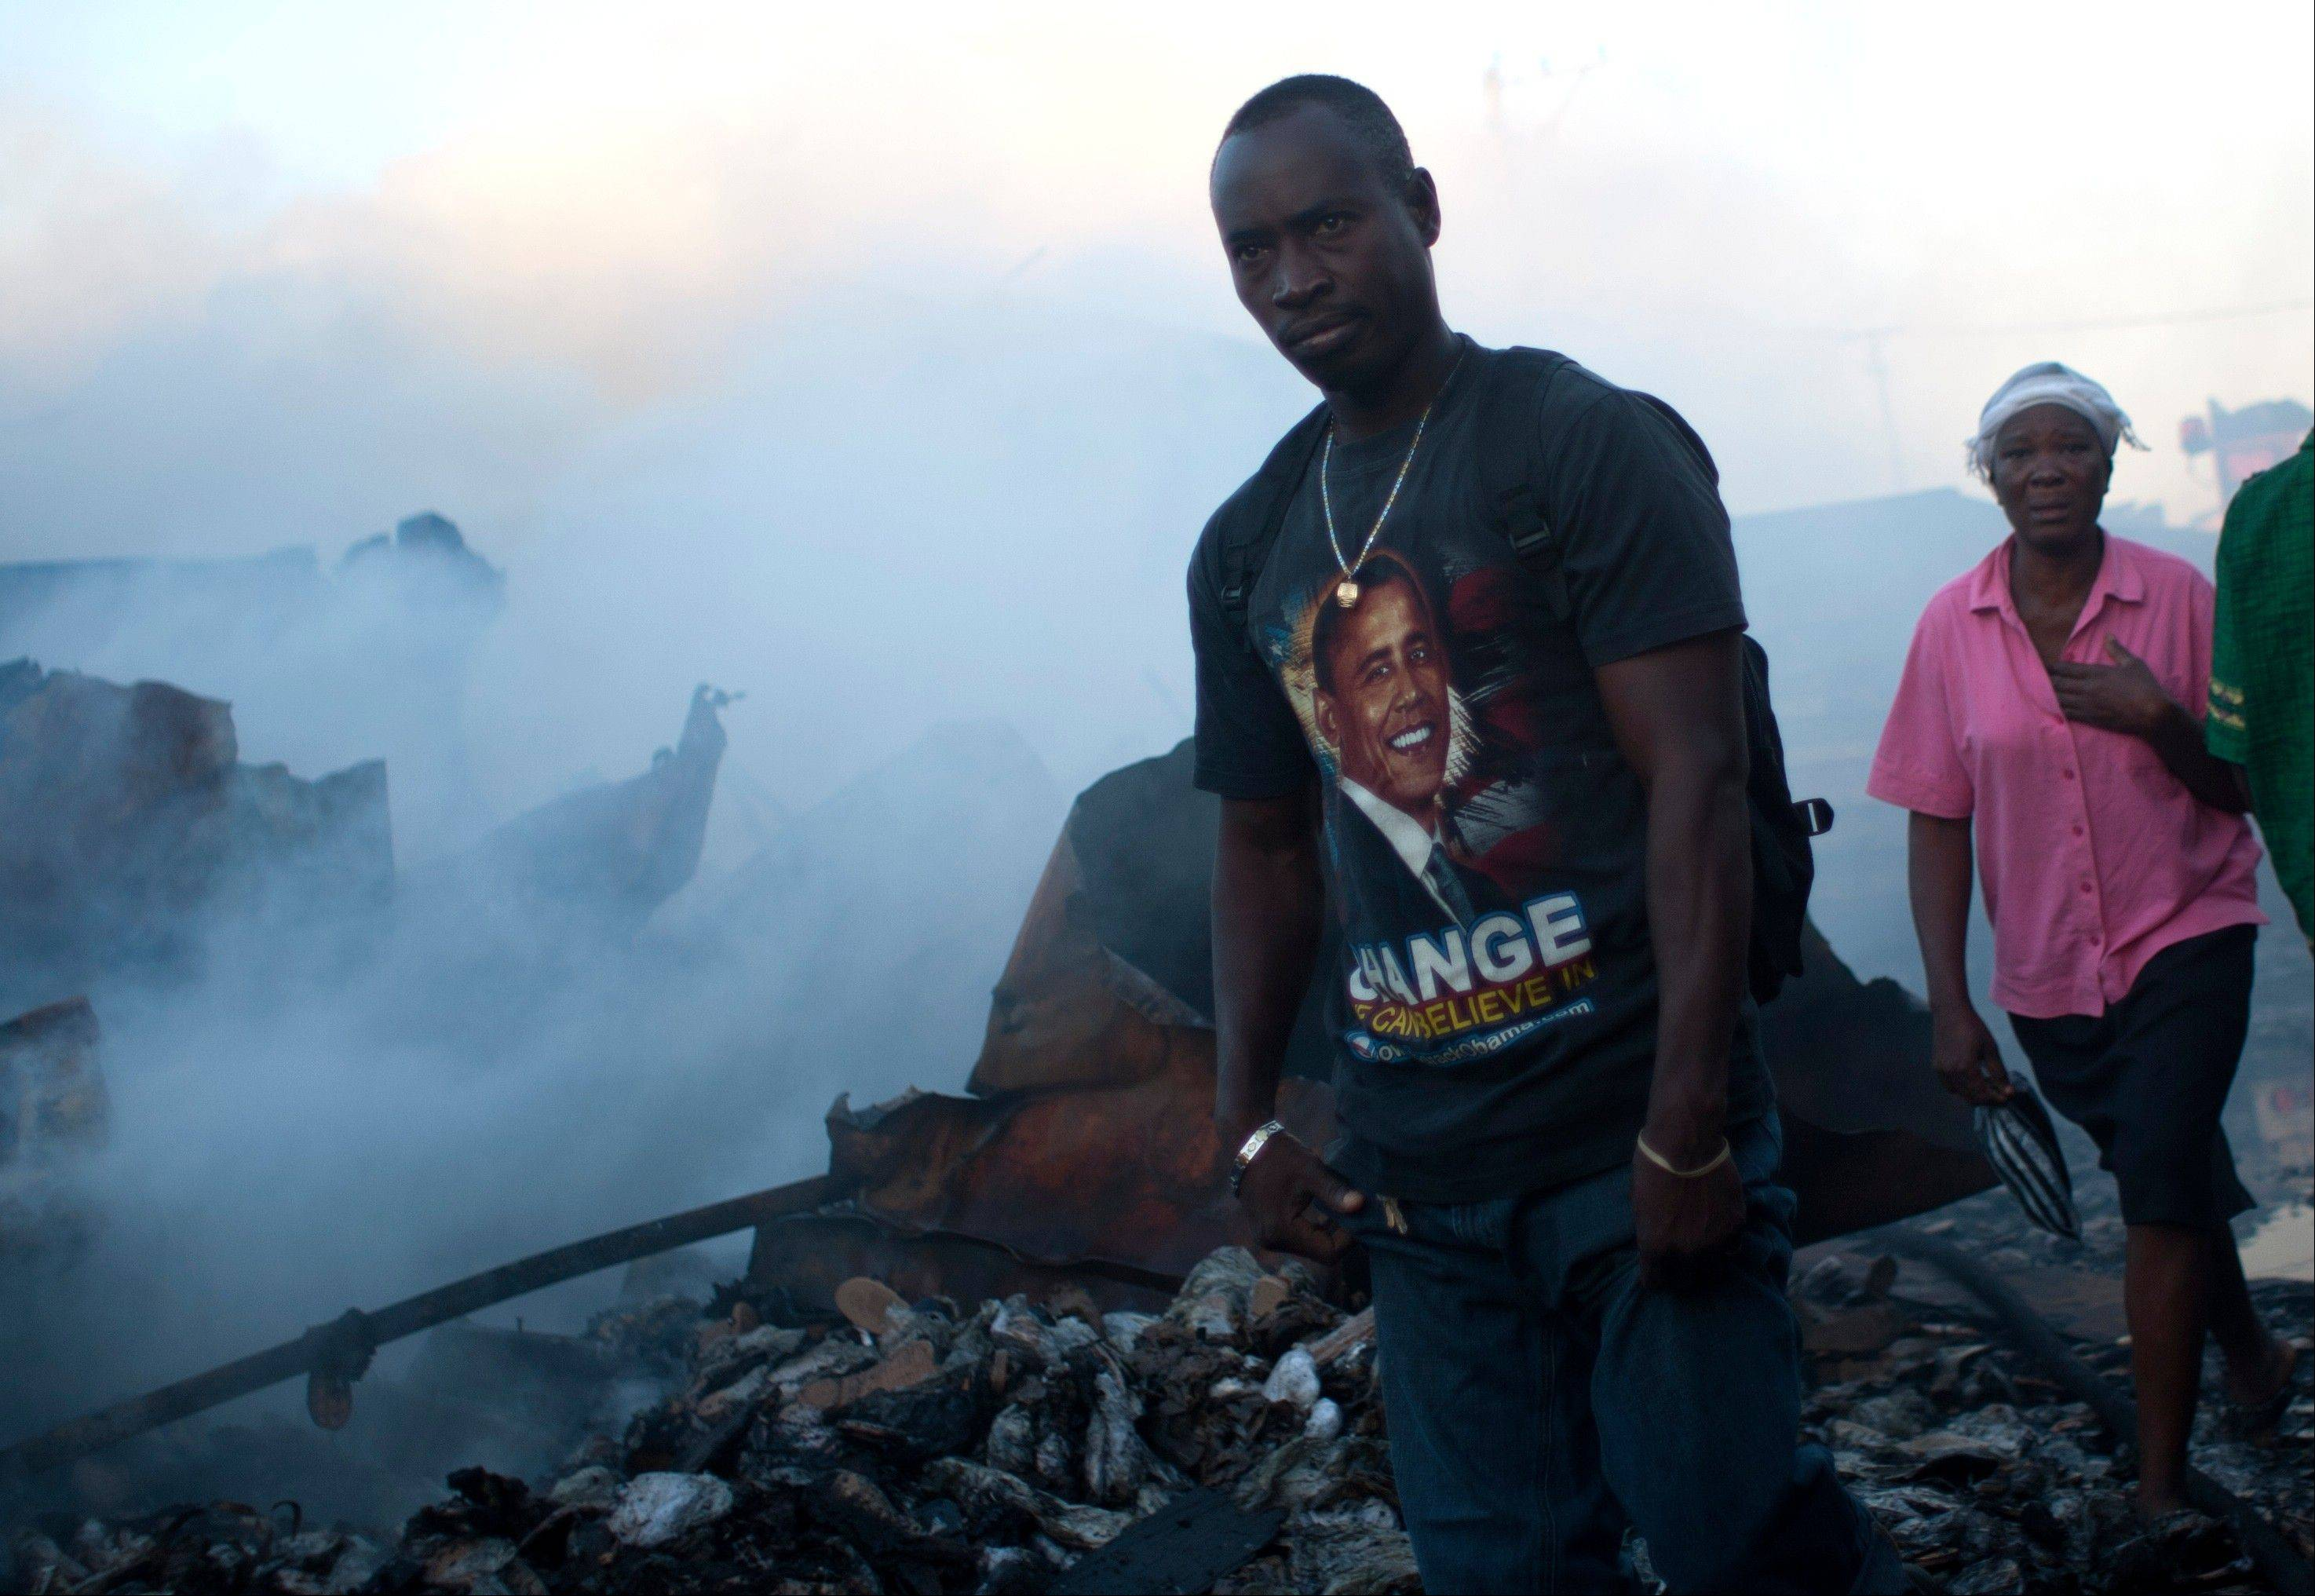 People walk by the remains of a market burned in an overnight fire in the Haitian capital's Market District in Port-au-Prince, Haiti, Saturday, Dec. 29. The market is one of several that have burned over the past year.